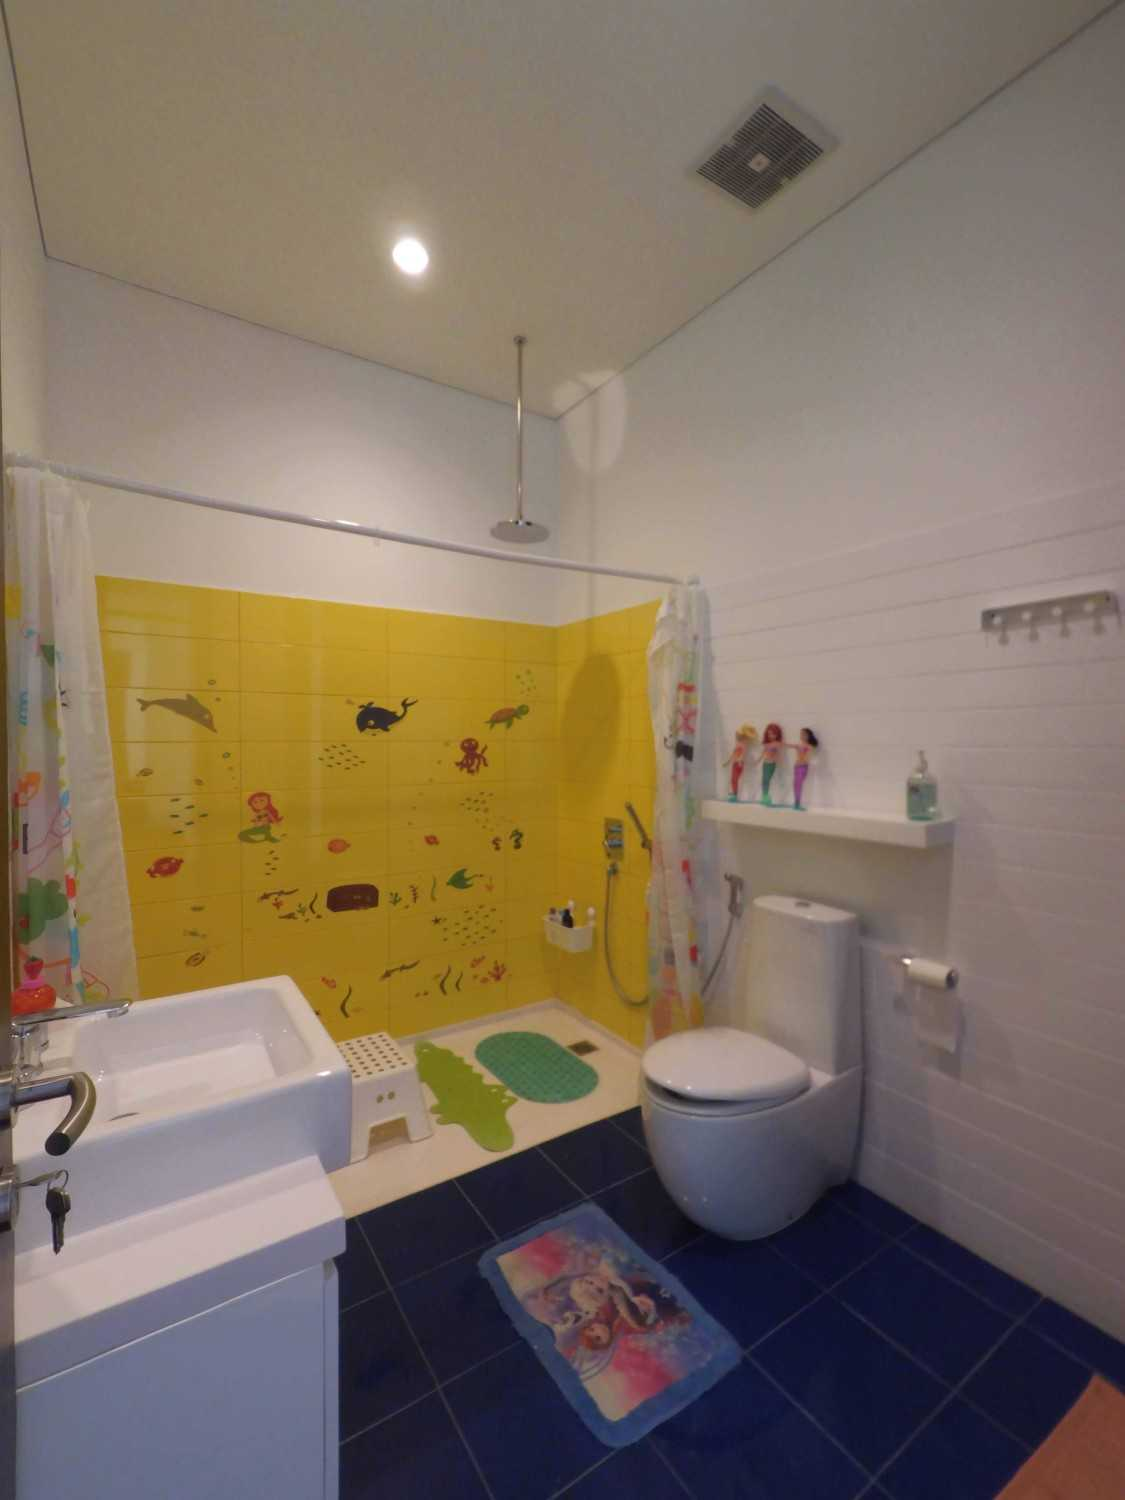 Dezan Studio Interior - Kids Room Pondok Indah Pondok Indah Kids Bathroom  19414